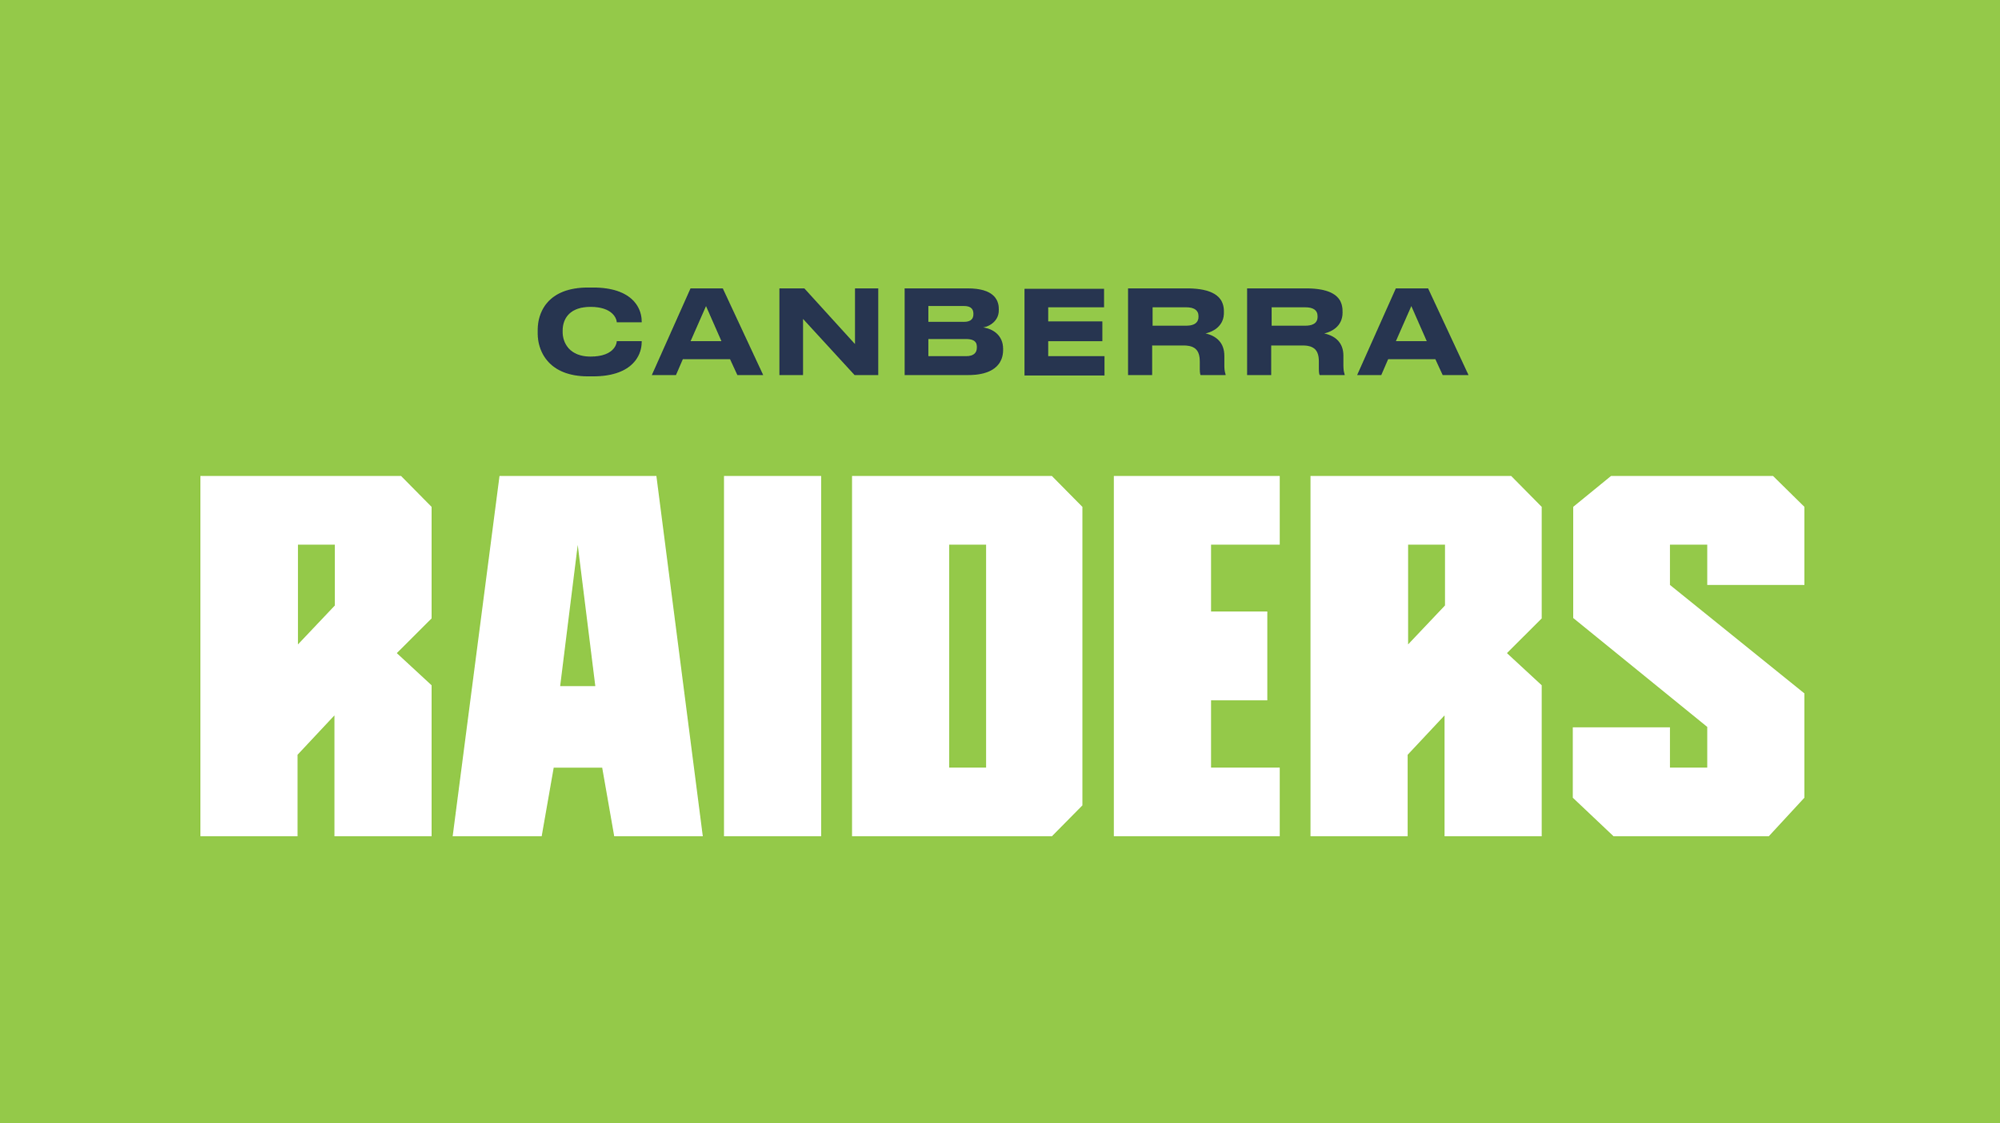 New Logo and Identity for Canberra Raiders by Inklab